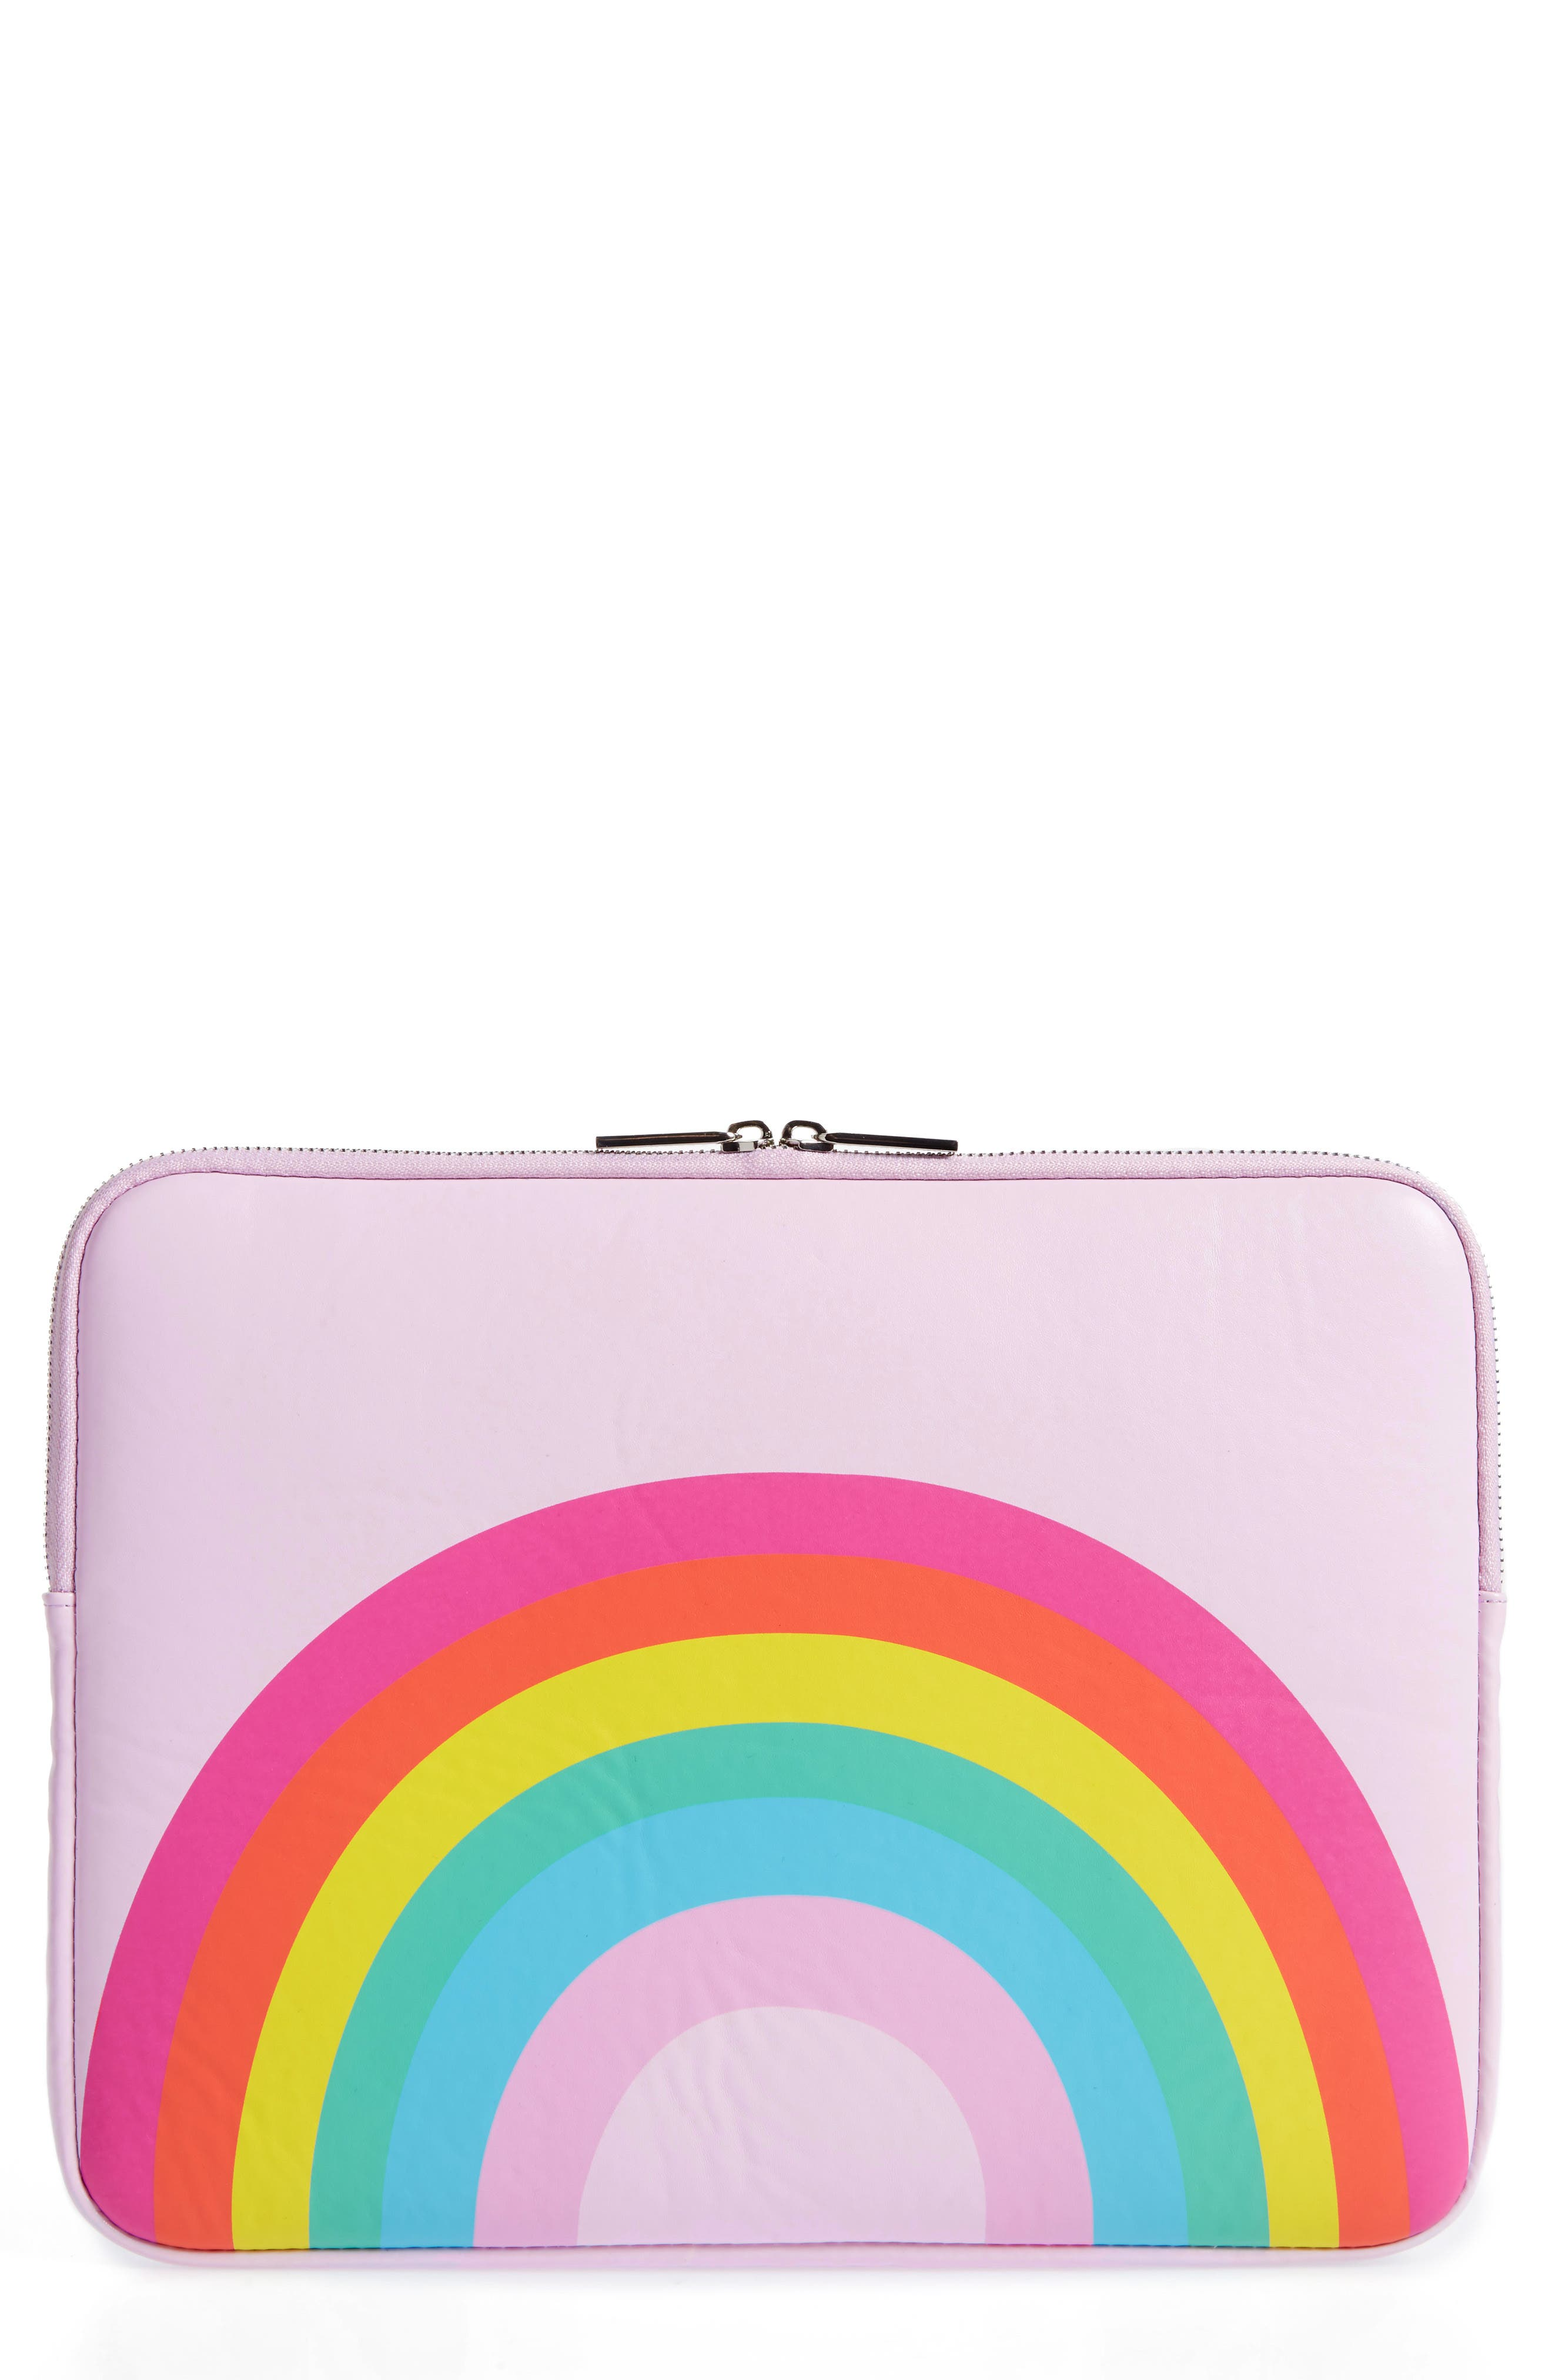 Alternate Image 1 Selected - Skinny Dip Over the Rainbow 13-Inch Laptop Sleeve